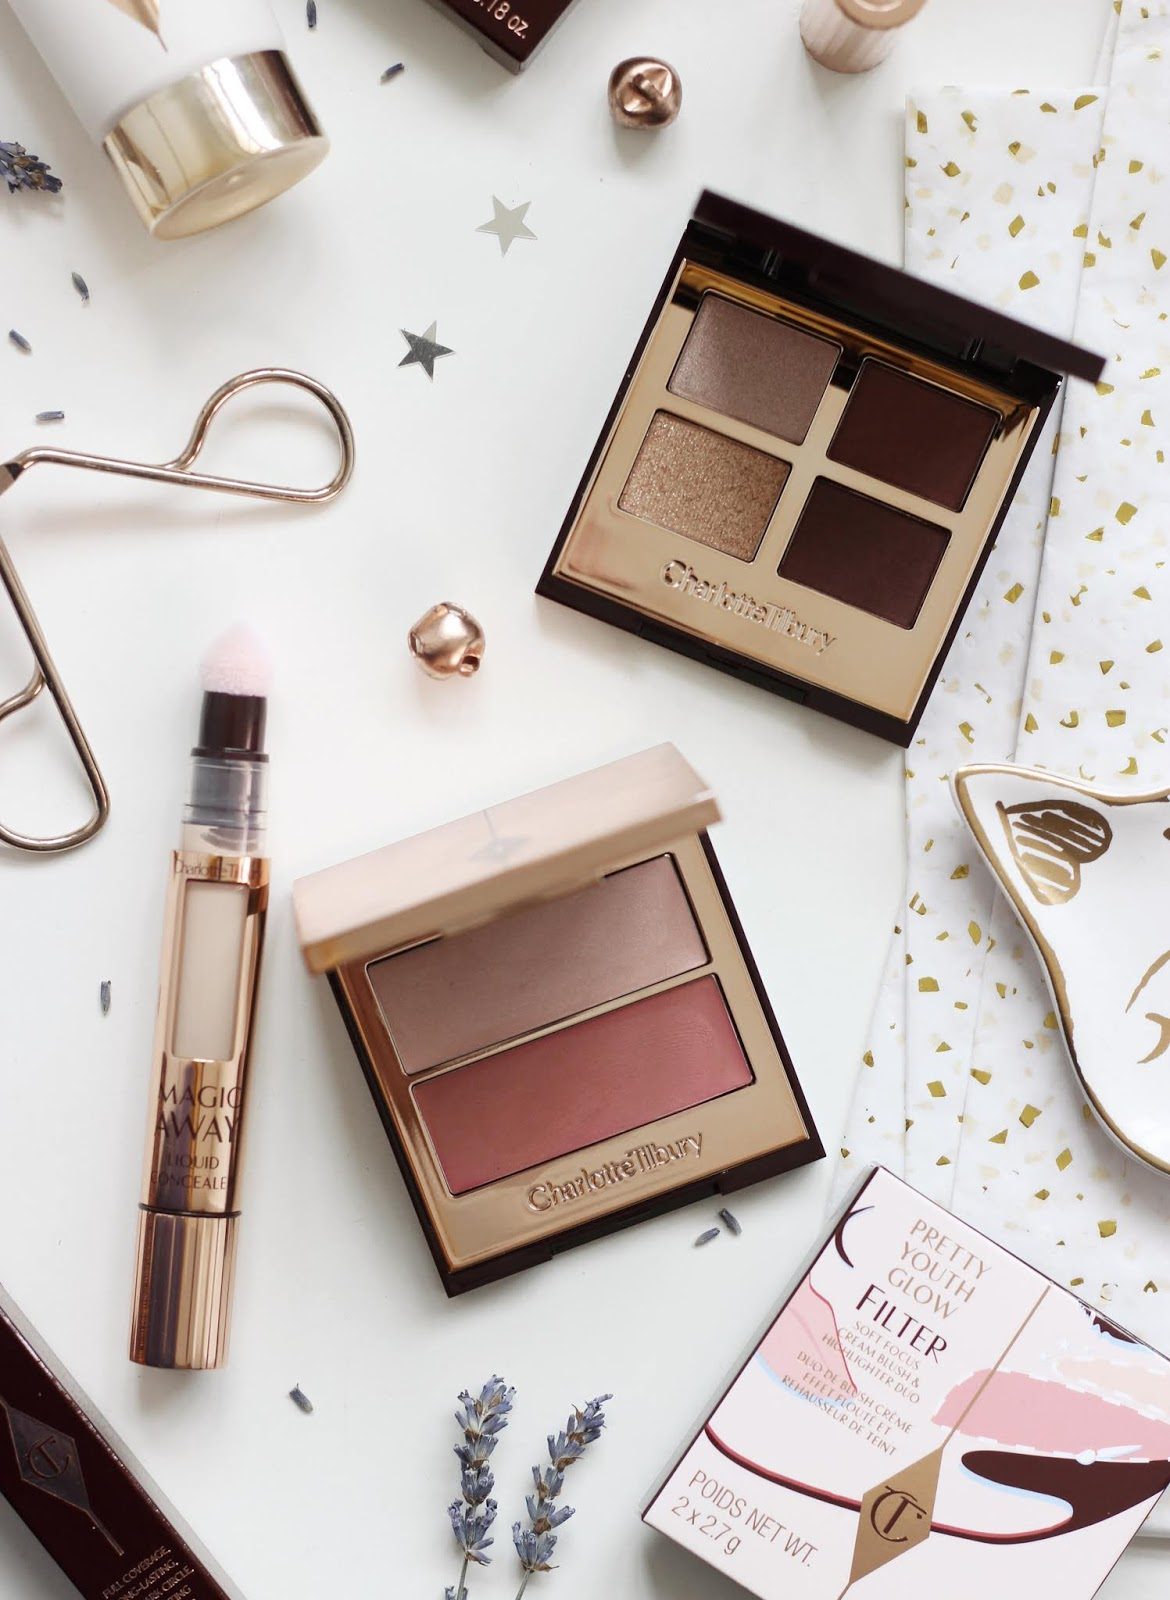 Charlotte Tilbury Products On Trial Review